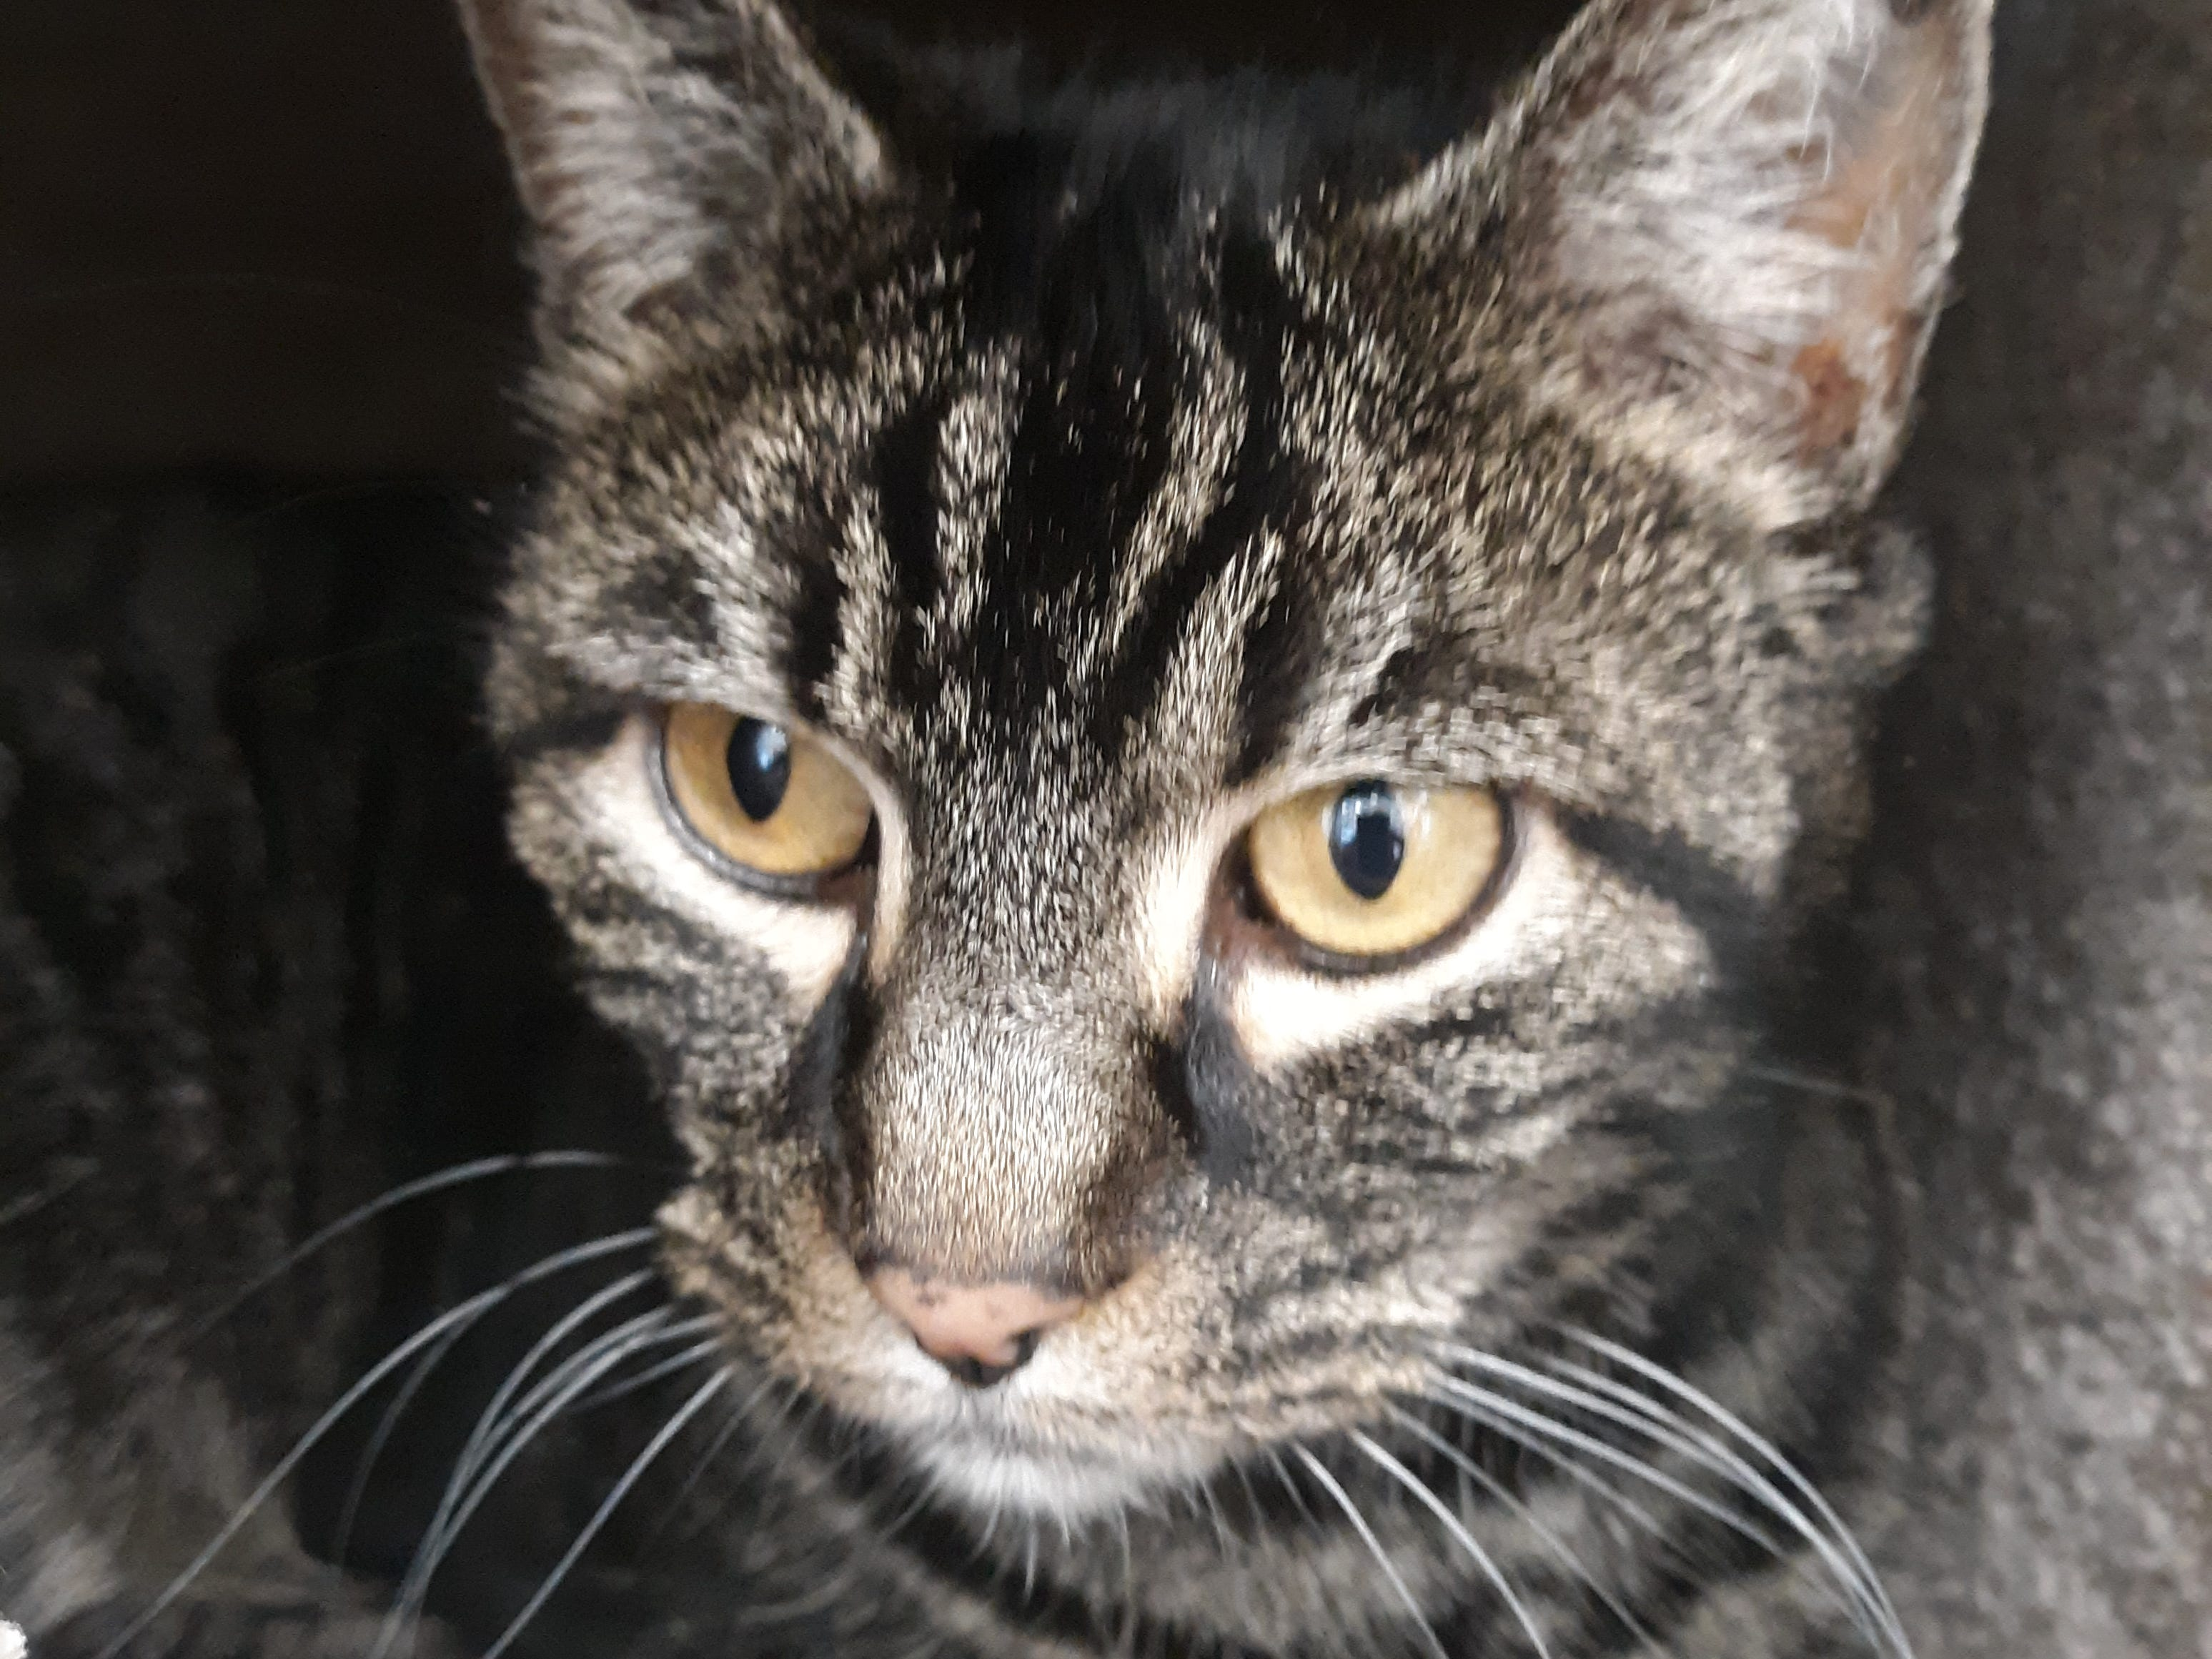 Sophie is a 5-year-old, female, domestic shorthair dark tabby cat who is very sweet. She is spayed, vetted and current vaccines. All animal adoptions include spaying or neutering and vaccinations. Apply with Another Chance Animal Welfare League at www.acawl.org. Call 356-0698.